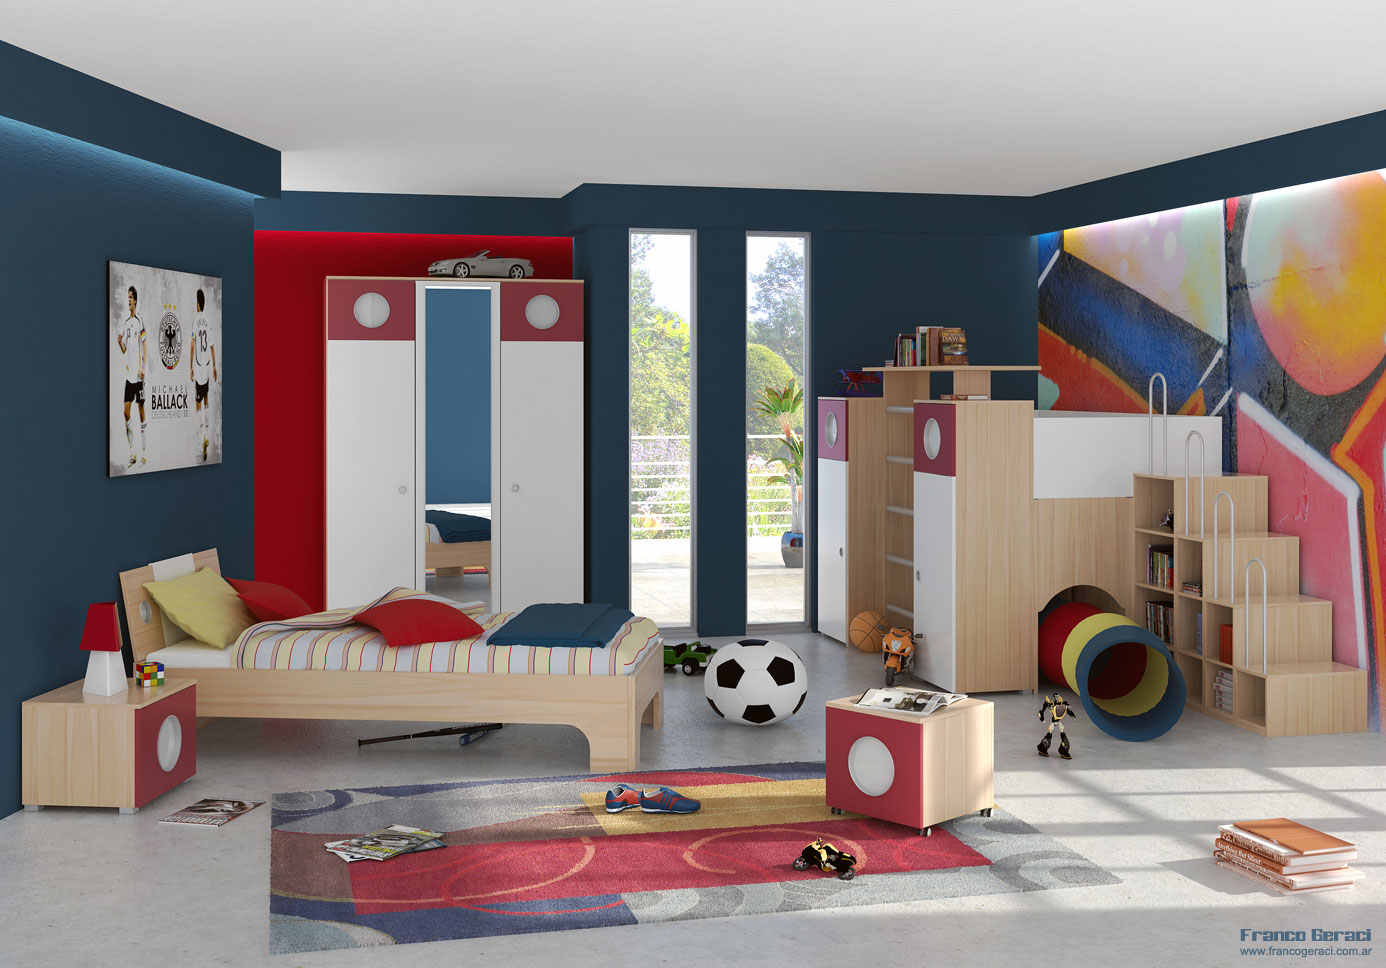 A spacious kids bedroom design ideas interior design ideas Fun bedroom decorating ideas